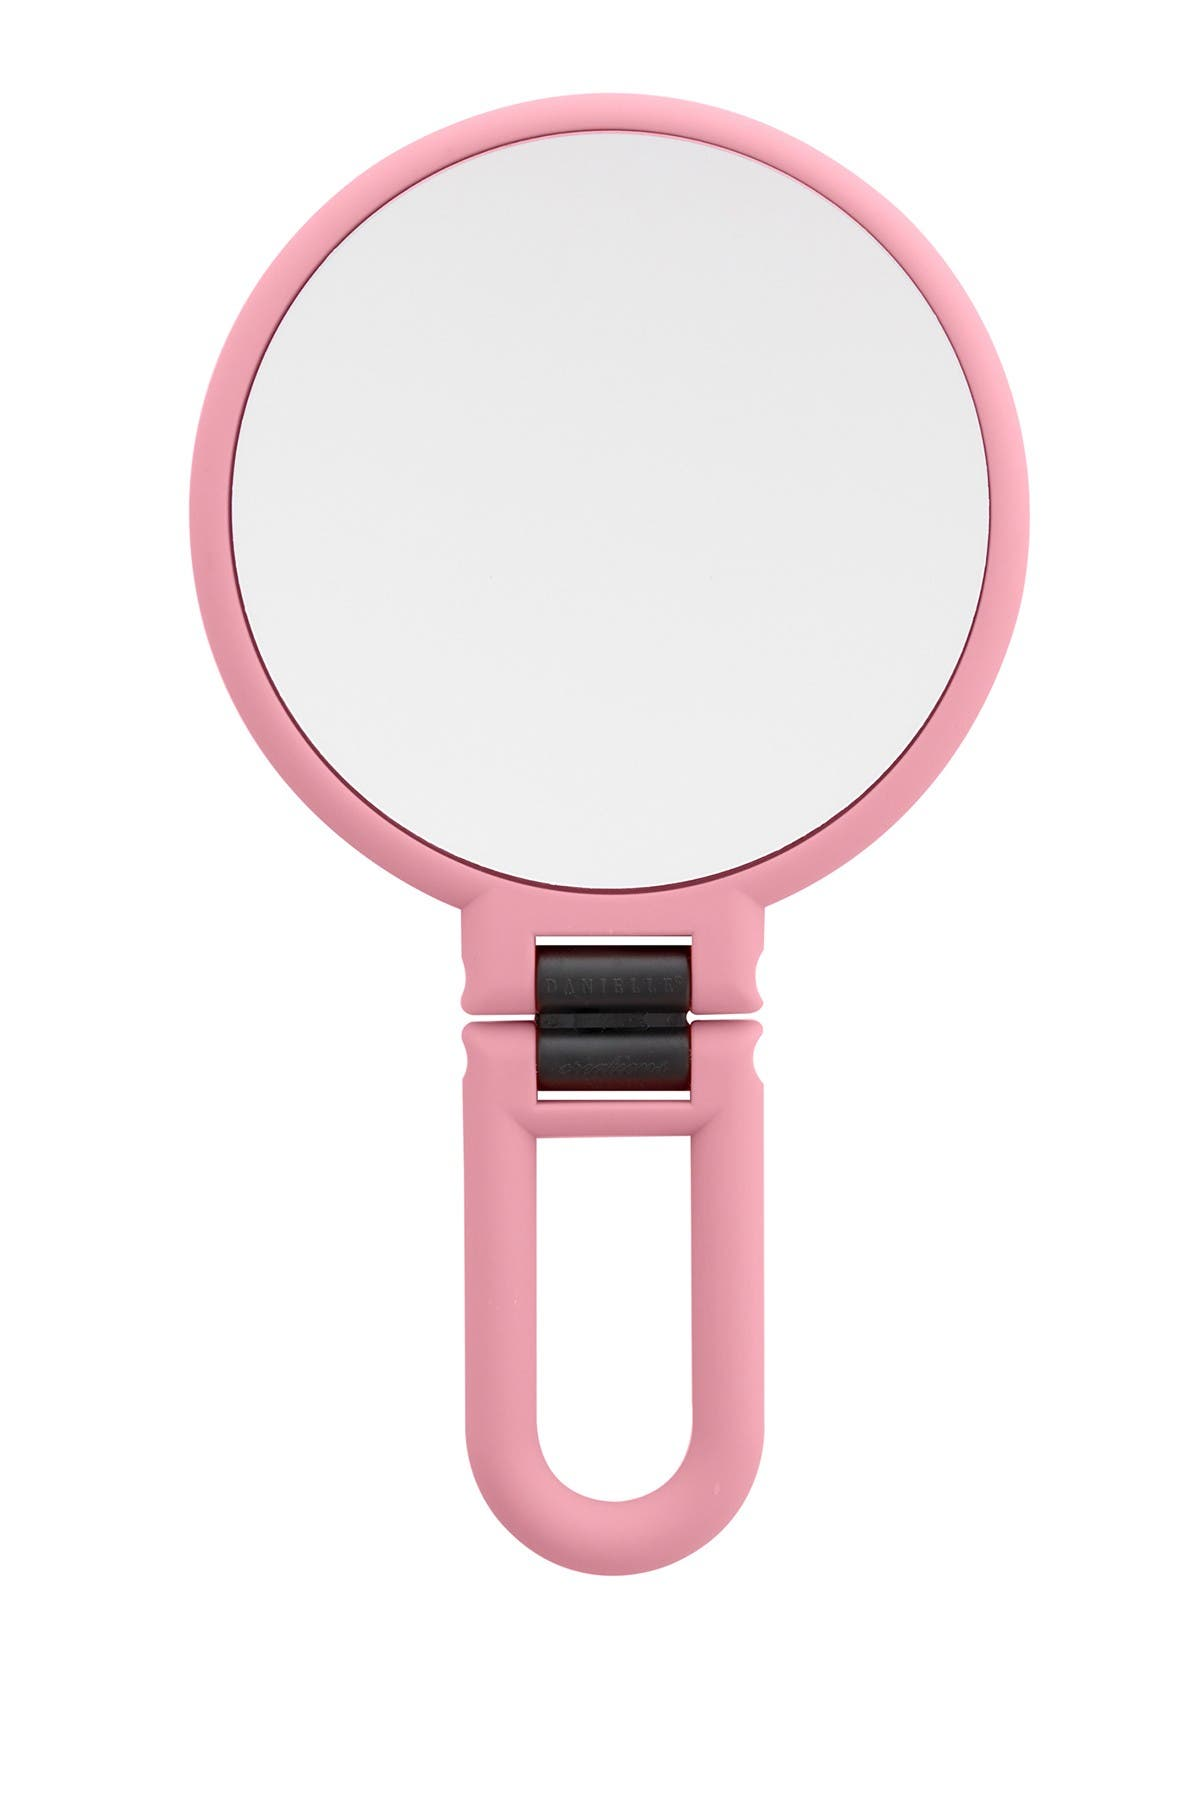 UPPER CANADA SOAPS Danielle Soft Touch Hand Held Foldable Mirror - Blush Pink